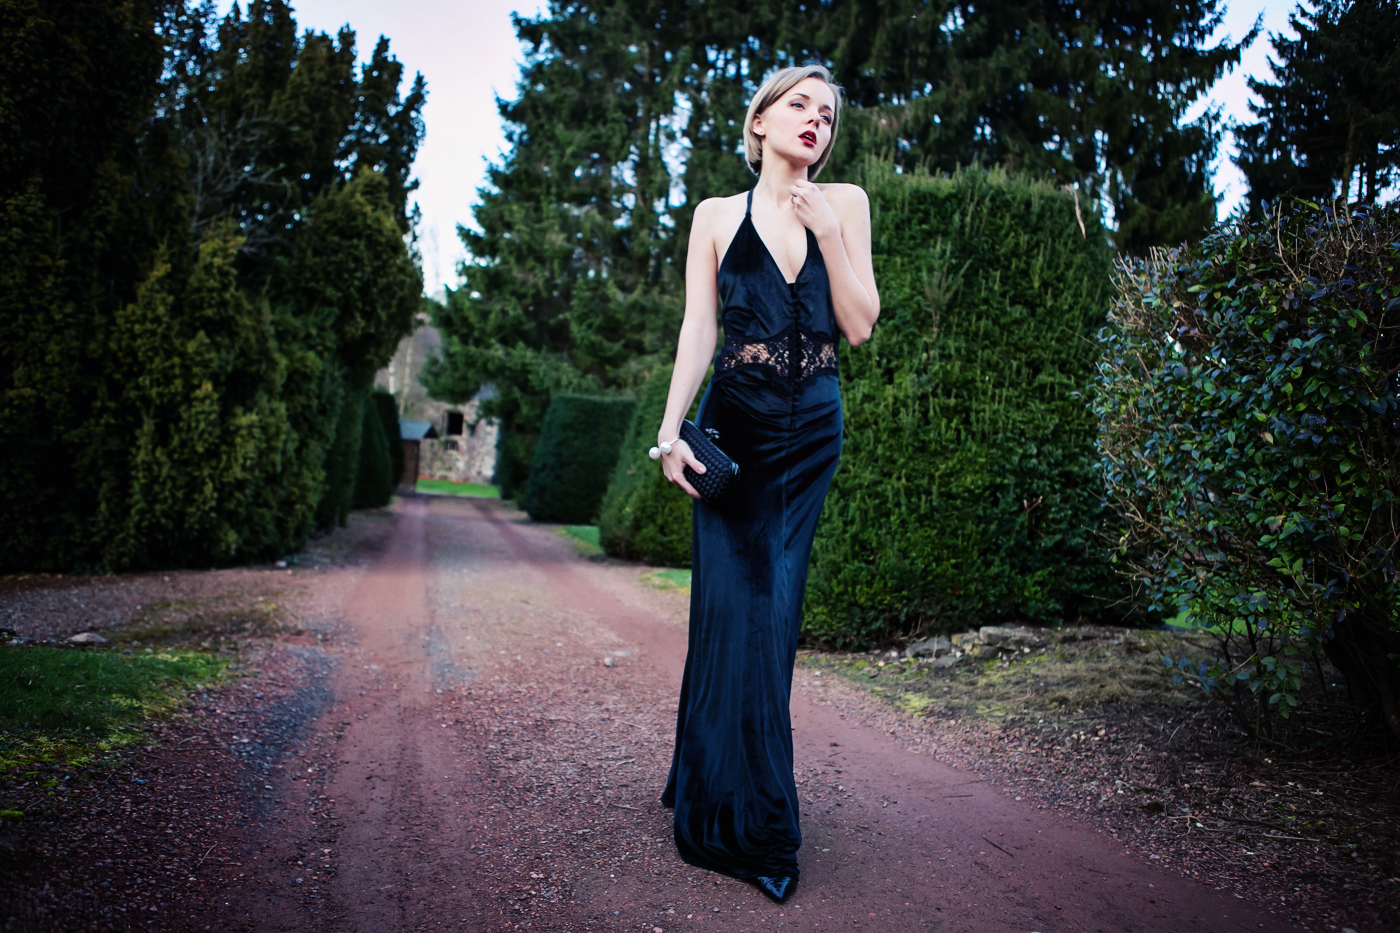 darya kamalova from thecablook com on the wedding in belgium wearing a maxi black dress from jarlo and bottega veneta knot black klutch with zara pearls bracelet_-28 copy